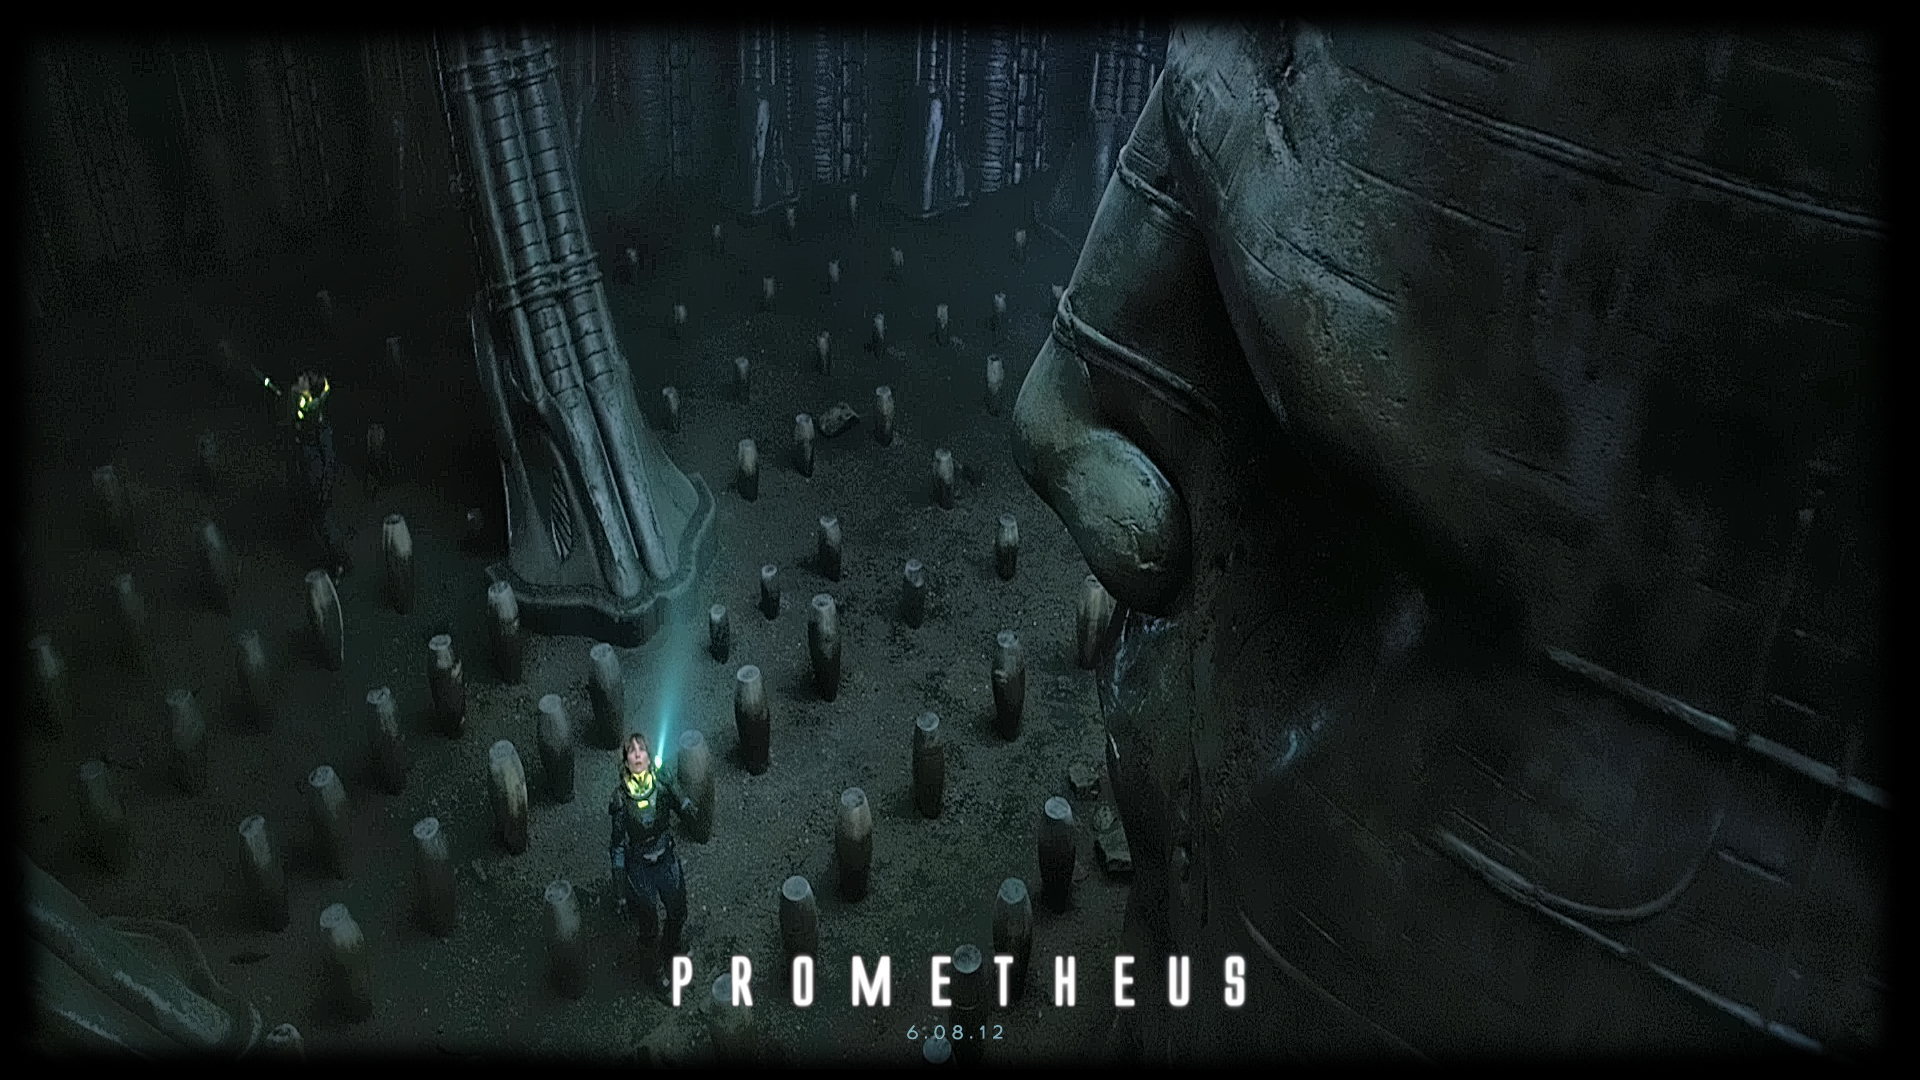 Prometheus Tastes Great Less Filling Movie Review At